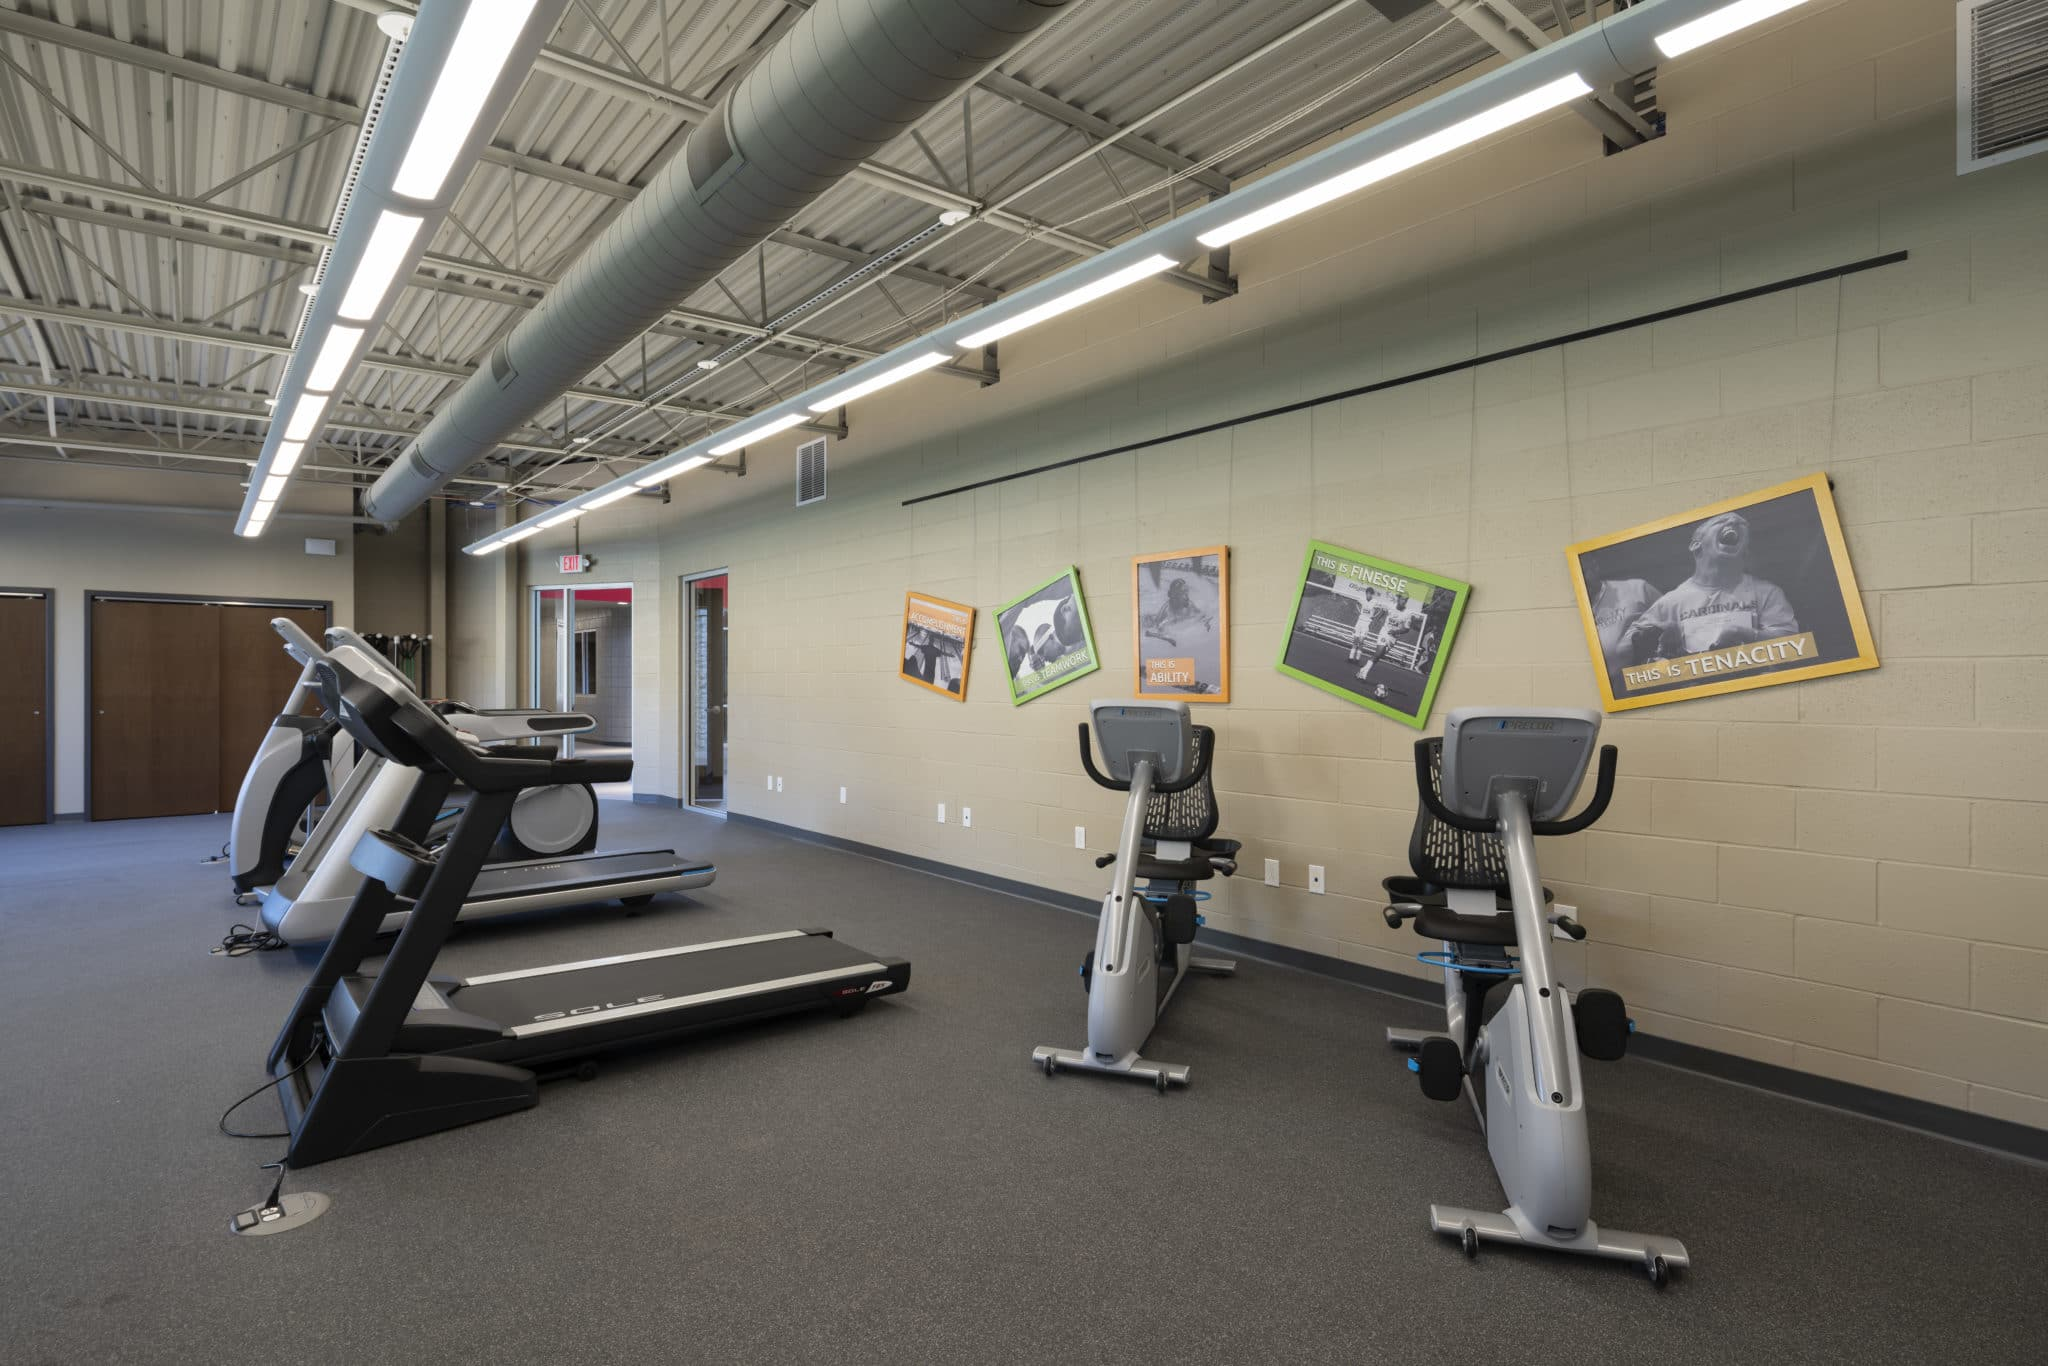 Treadmills and stationary bicycles in the fitness center at the Training for Life Campus